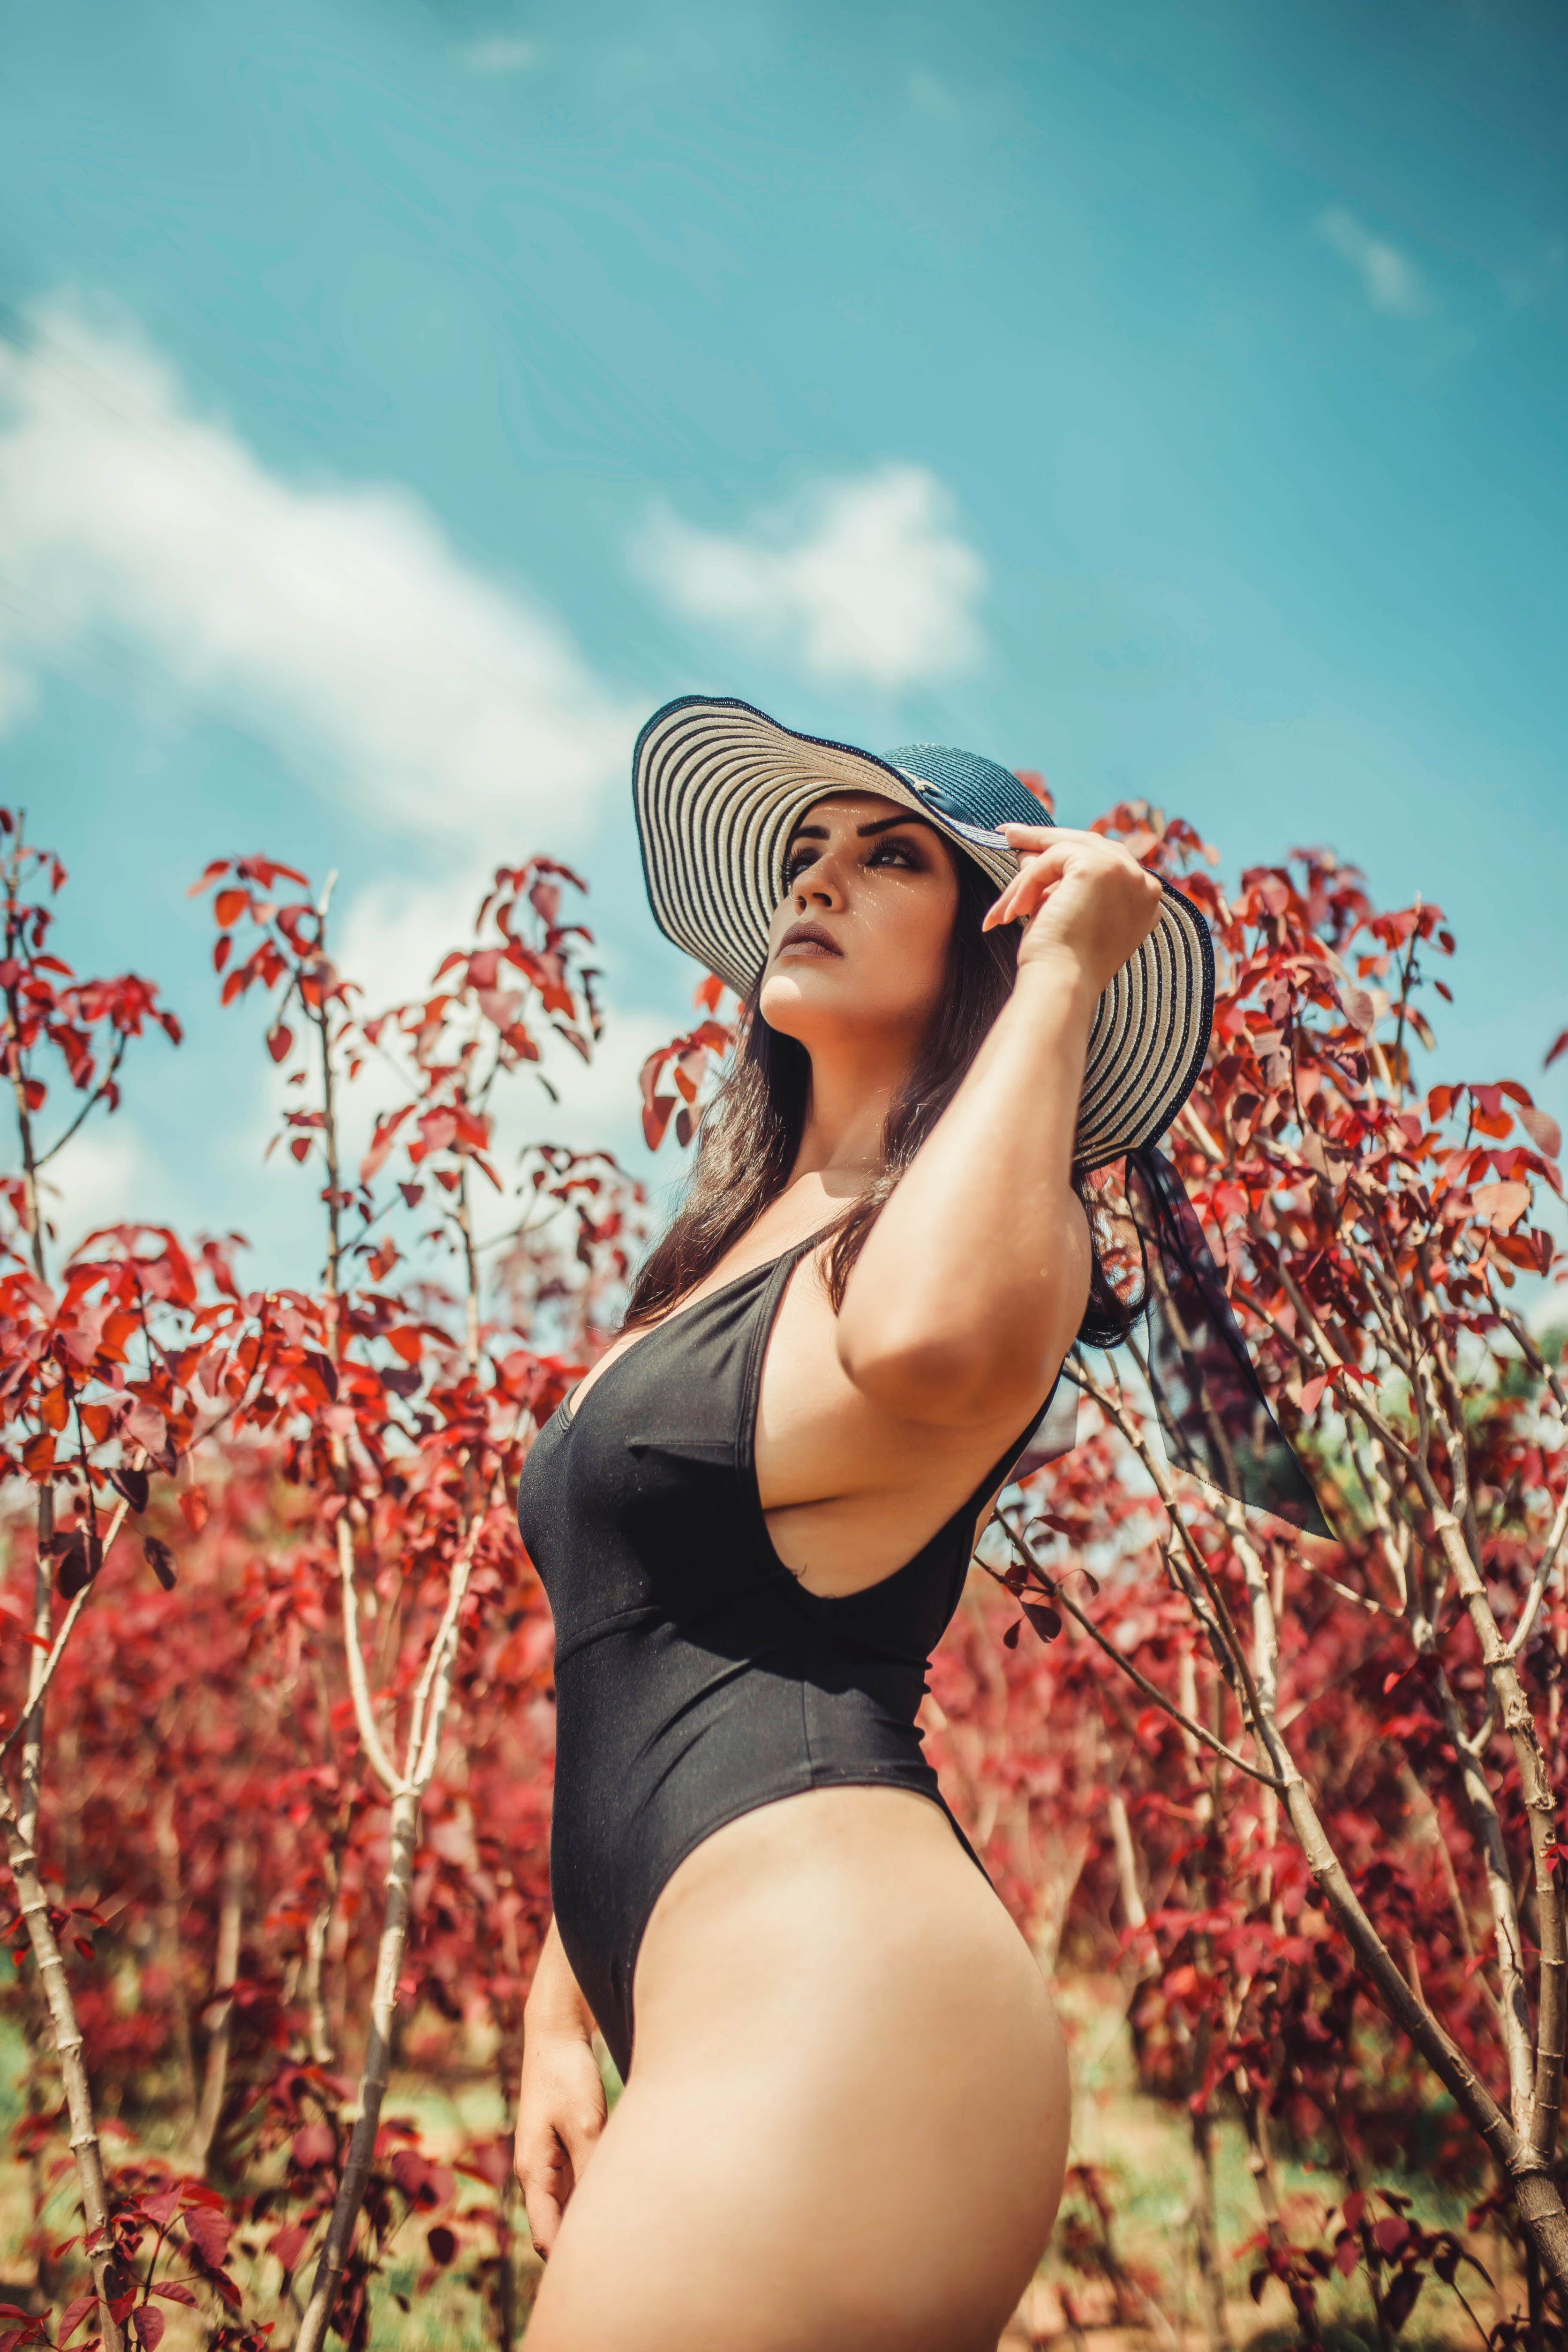 Low Angle Photo of Woman in Black Monokini Beside Trees